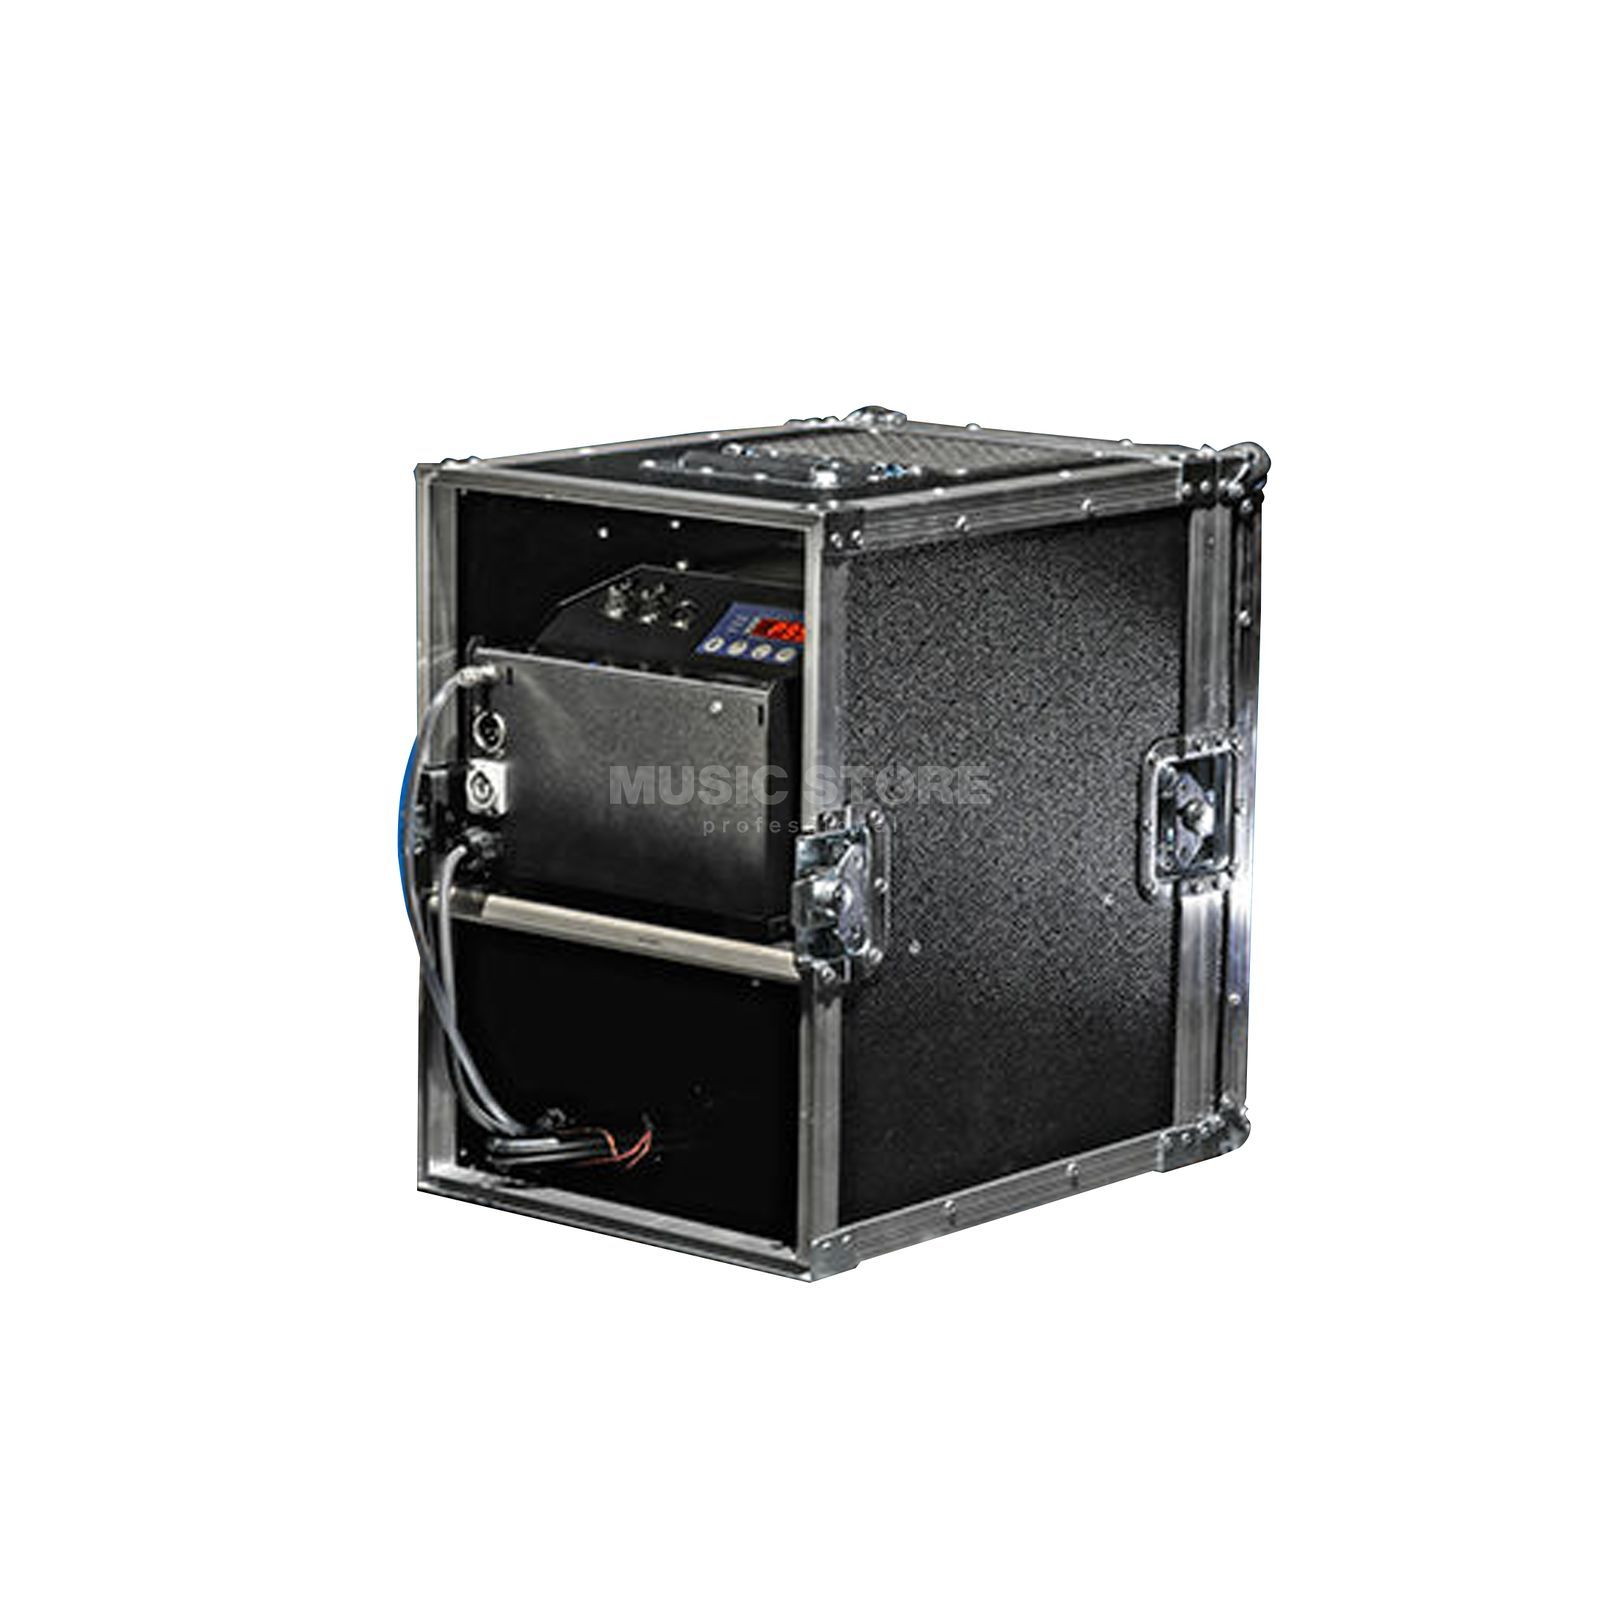 Smoke Factory Captain D. Case Nebelmaschine inkl. Flightcase Produktbild